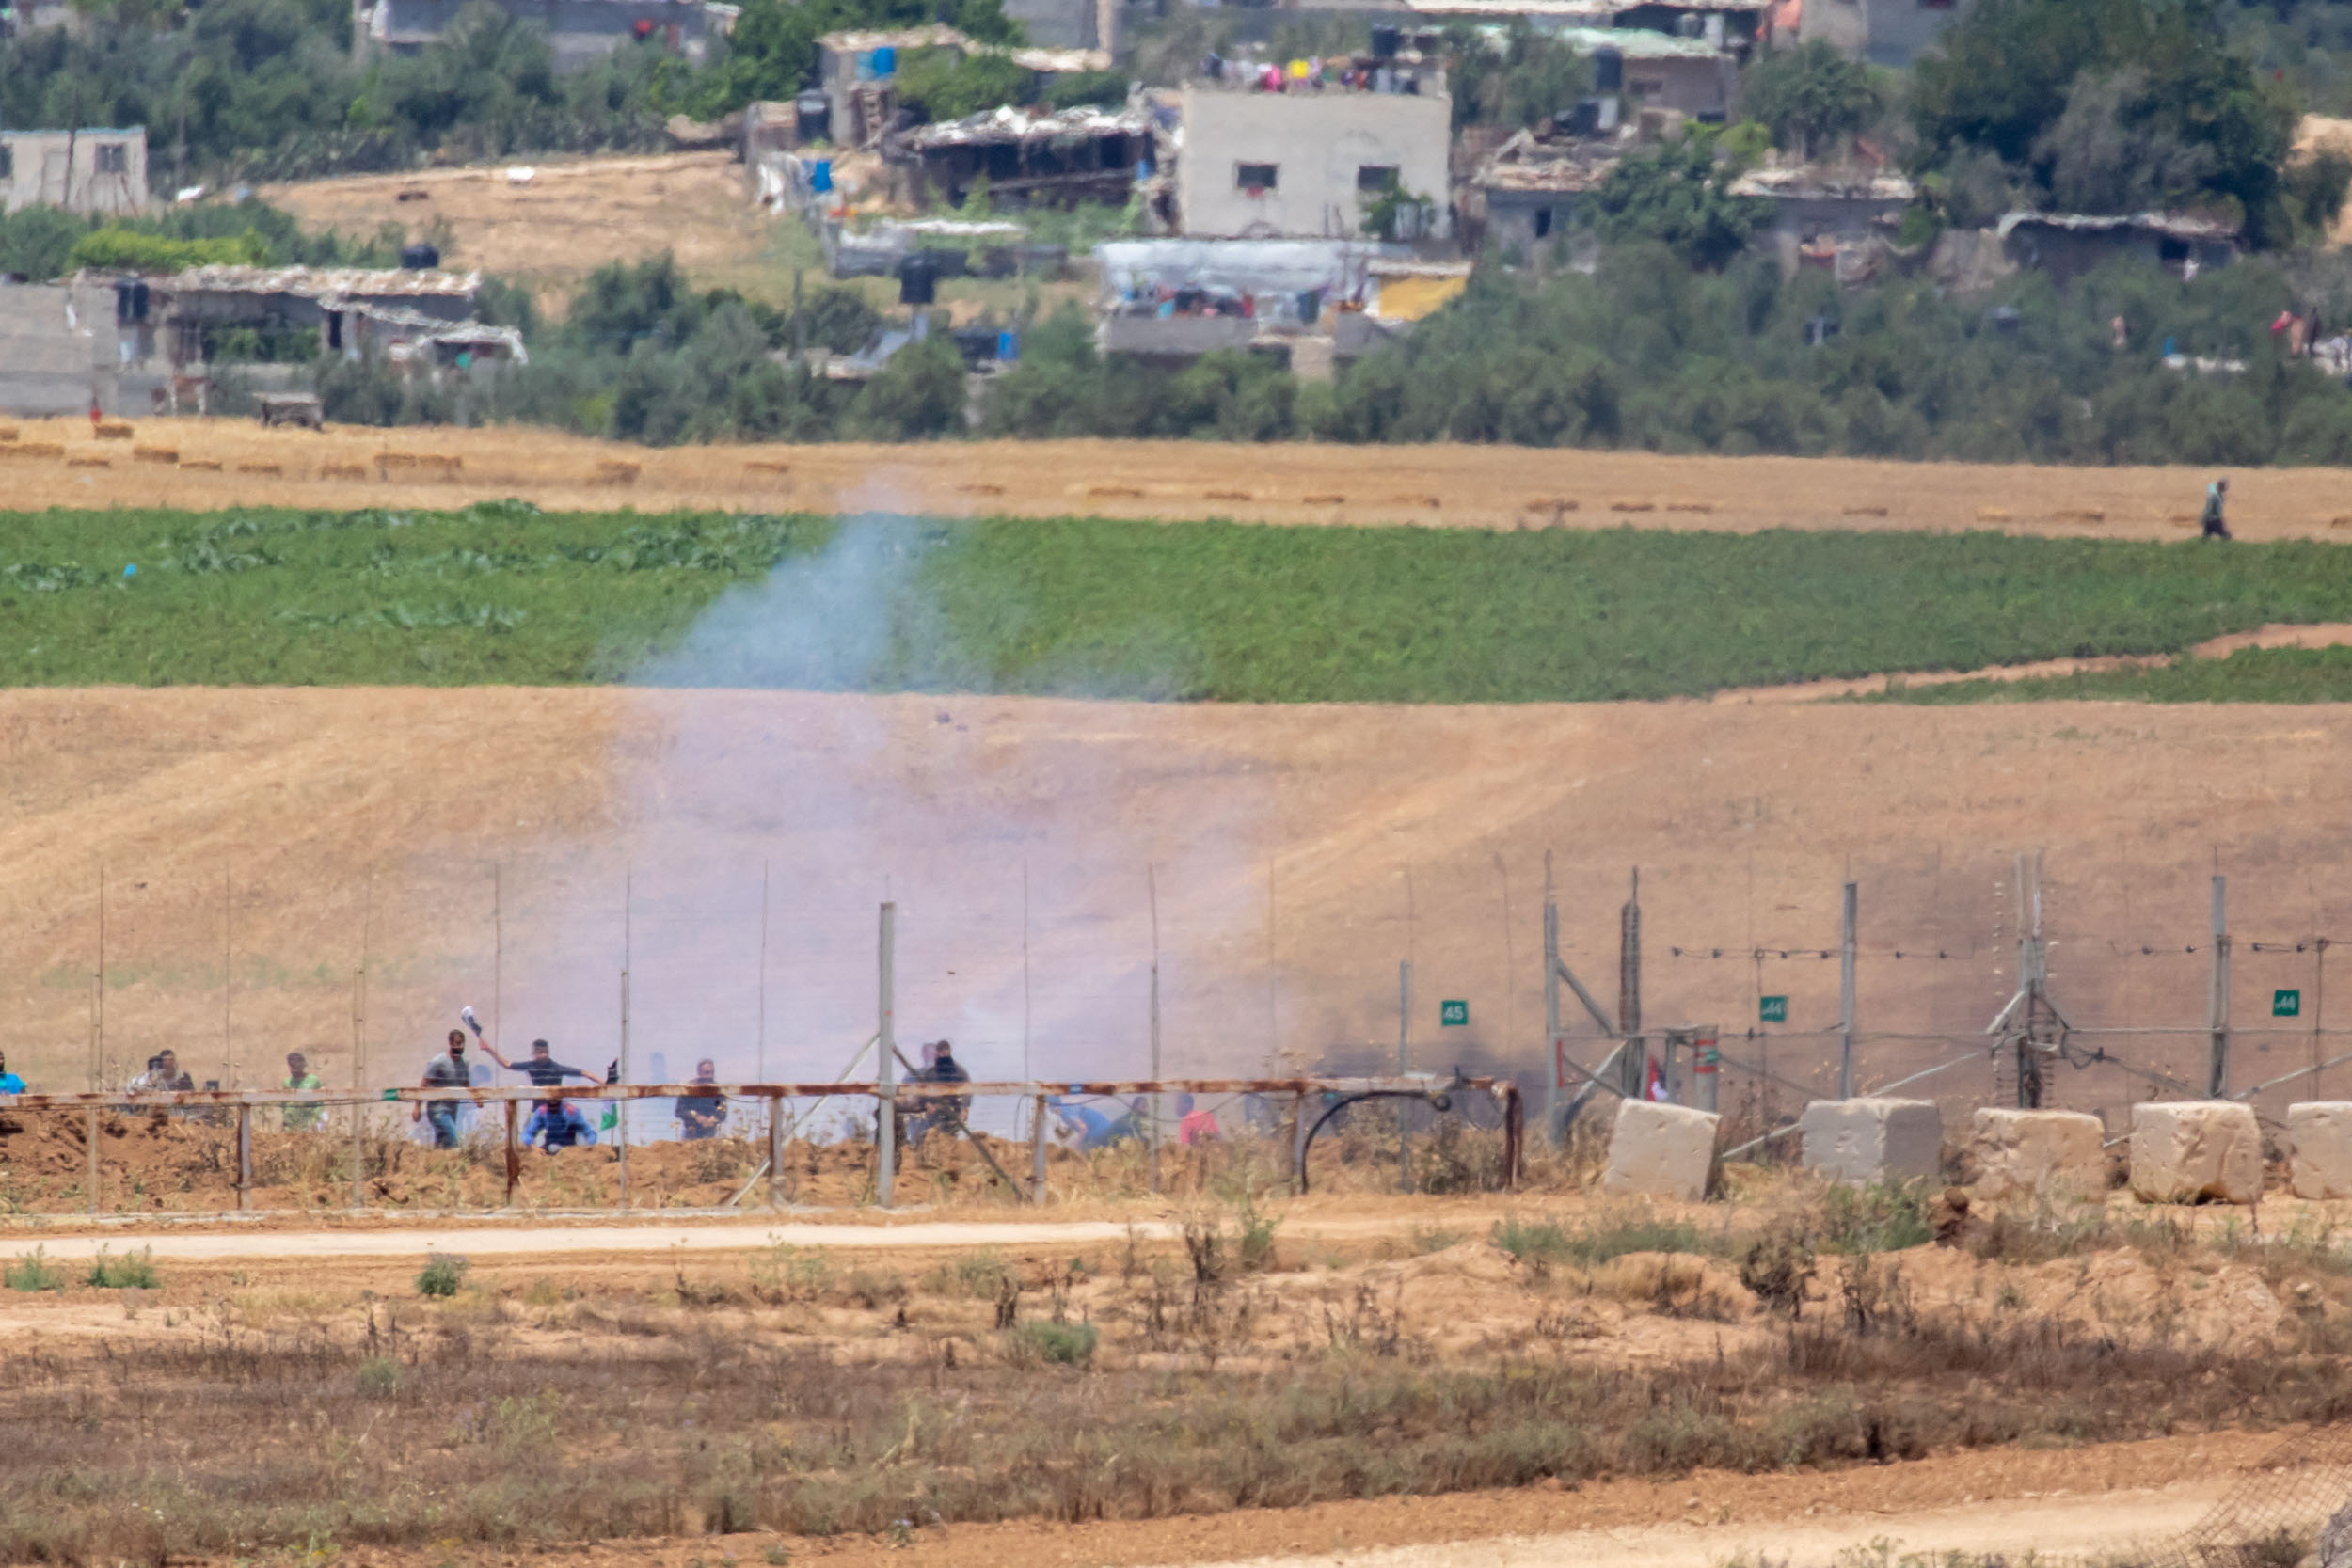 Northern Gaza Border, May 2018 - Clashes between IDF and Gaza peoples trying to forcefully cross the Israeli border